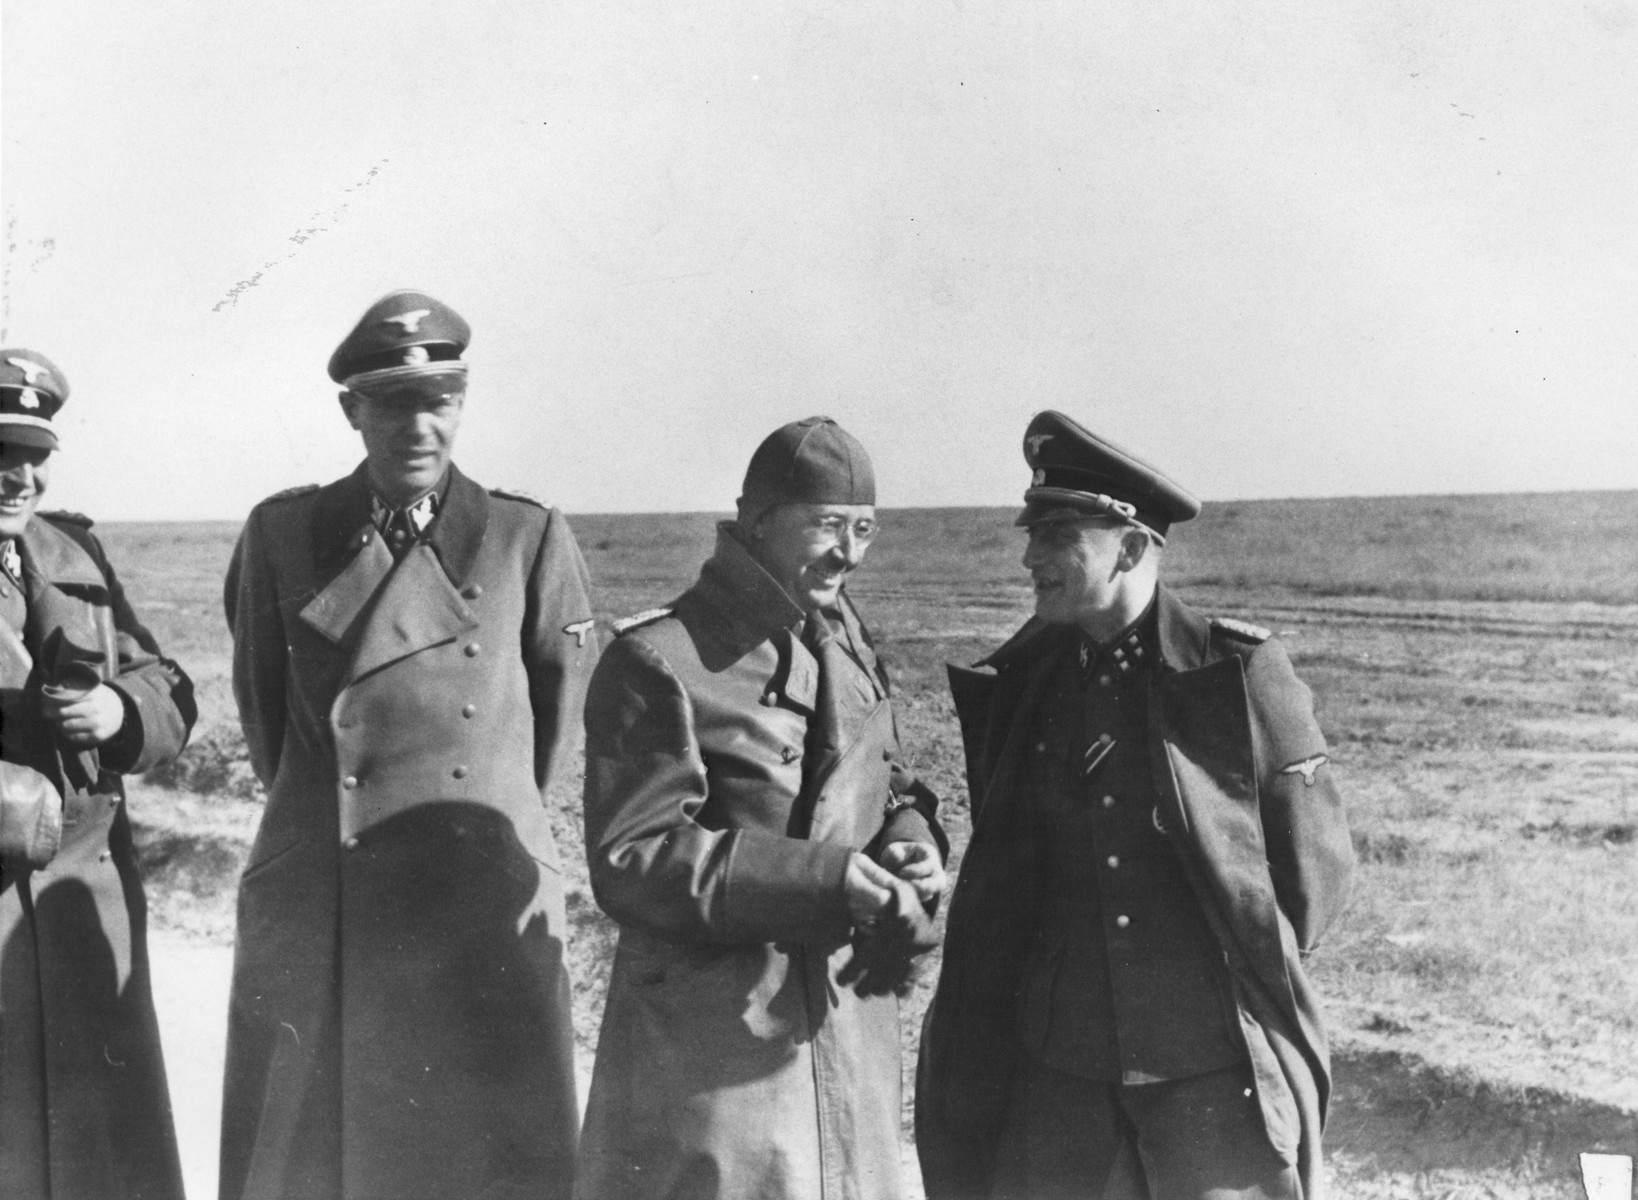 Reichsfuehrer-SS Heinrich Himmler (center) confers with SS and Police Leader Hans Adolf Pruetzmann (extreme left) and Ludolf Herman von Alvensleben (second from the left) during a visit to the Crimea.  During this visit, Himmler gave Pruetzmann a written order to kill all the residents of the Pinsk ghetto (population 16,200), then, the largest remaining Jewish community in the Ukraine.  The community was killed between October 29 and November 1, 1942.